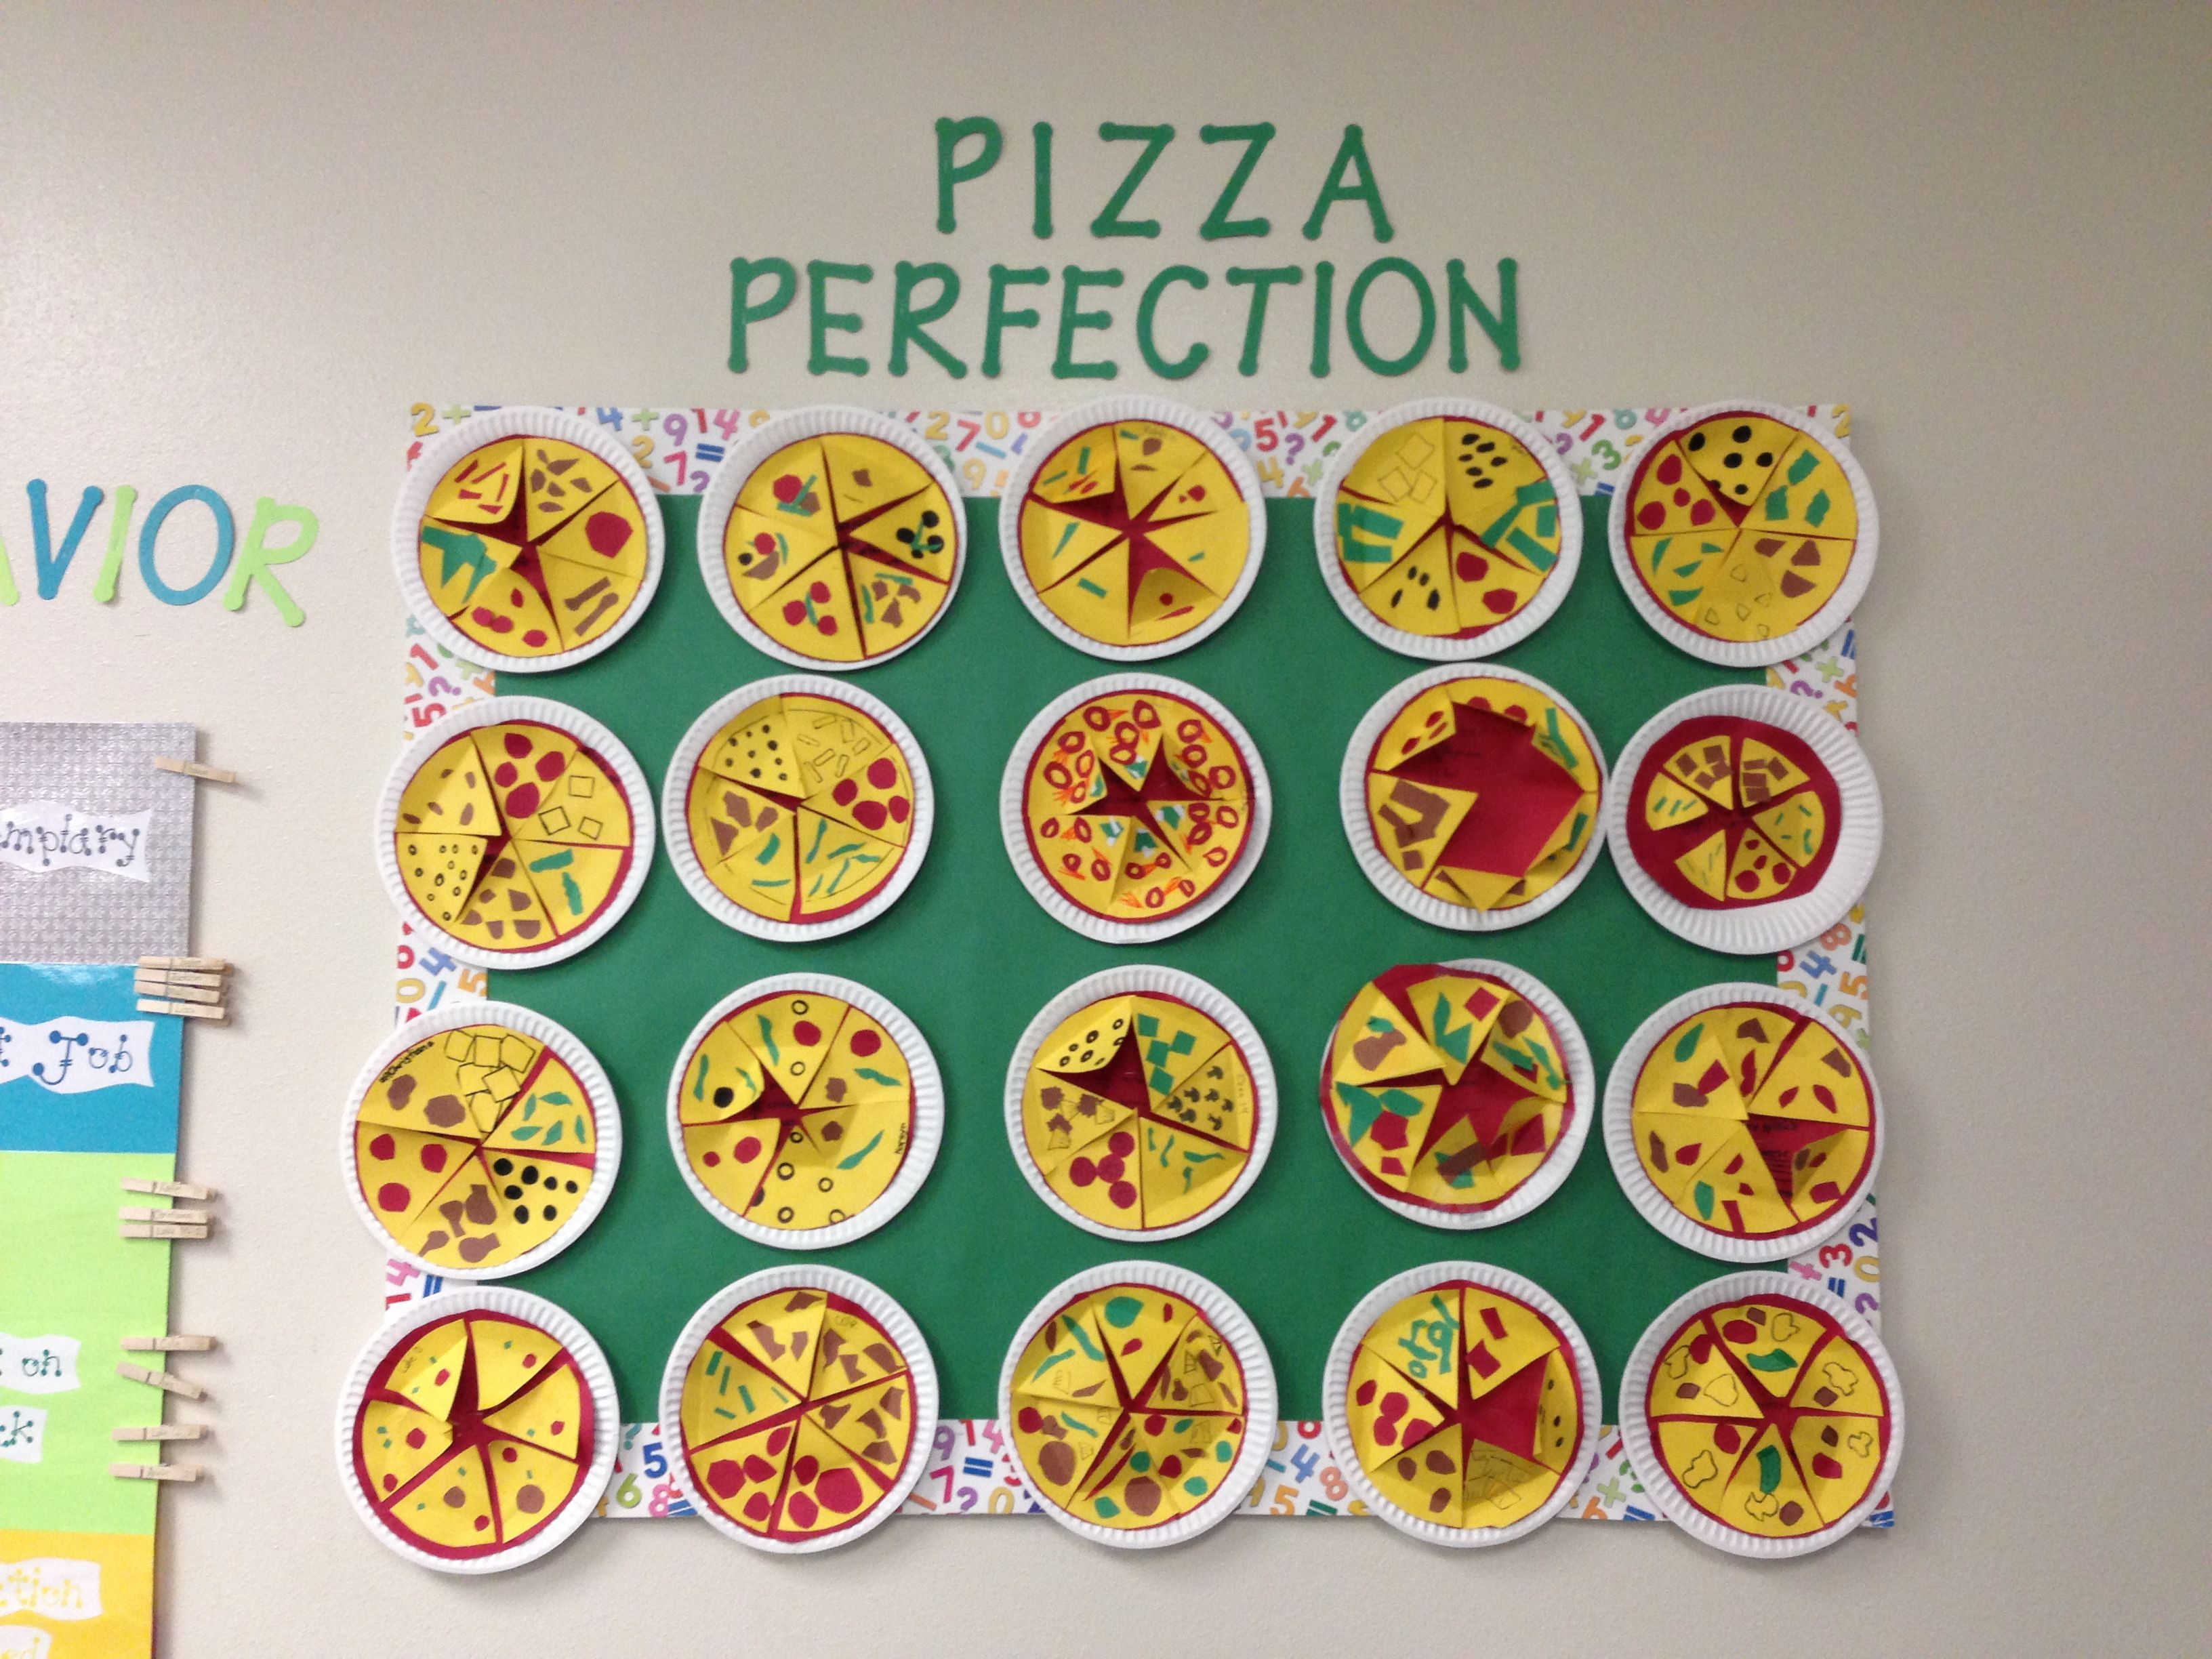 Pizza Arte Open Hours Fraction Pizza 4th Grade Relating Concepts To Real Life For The